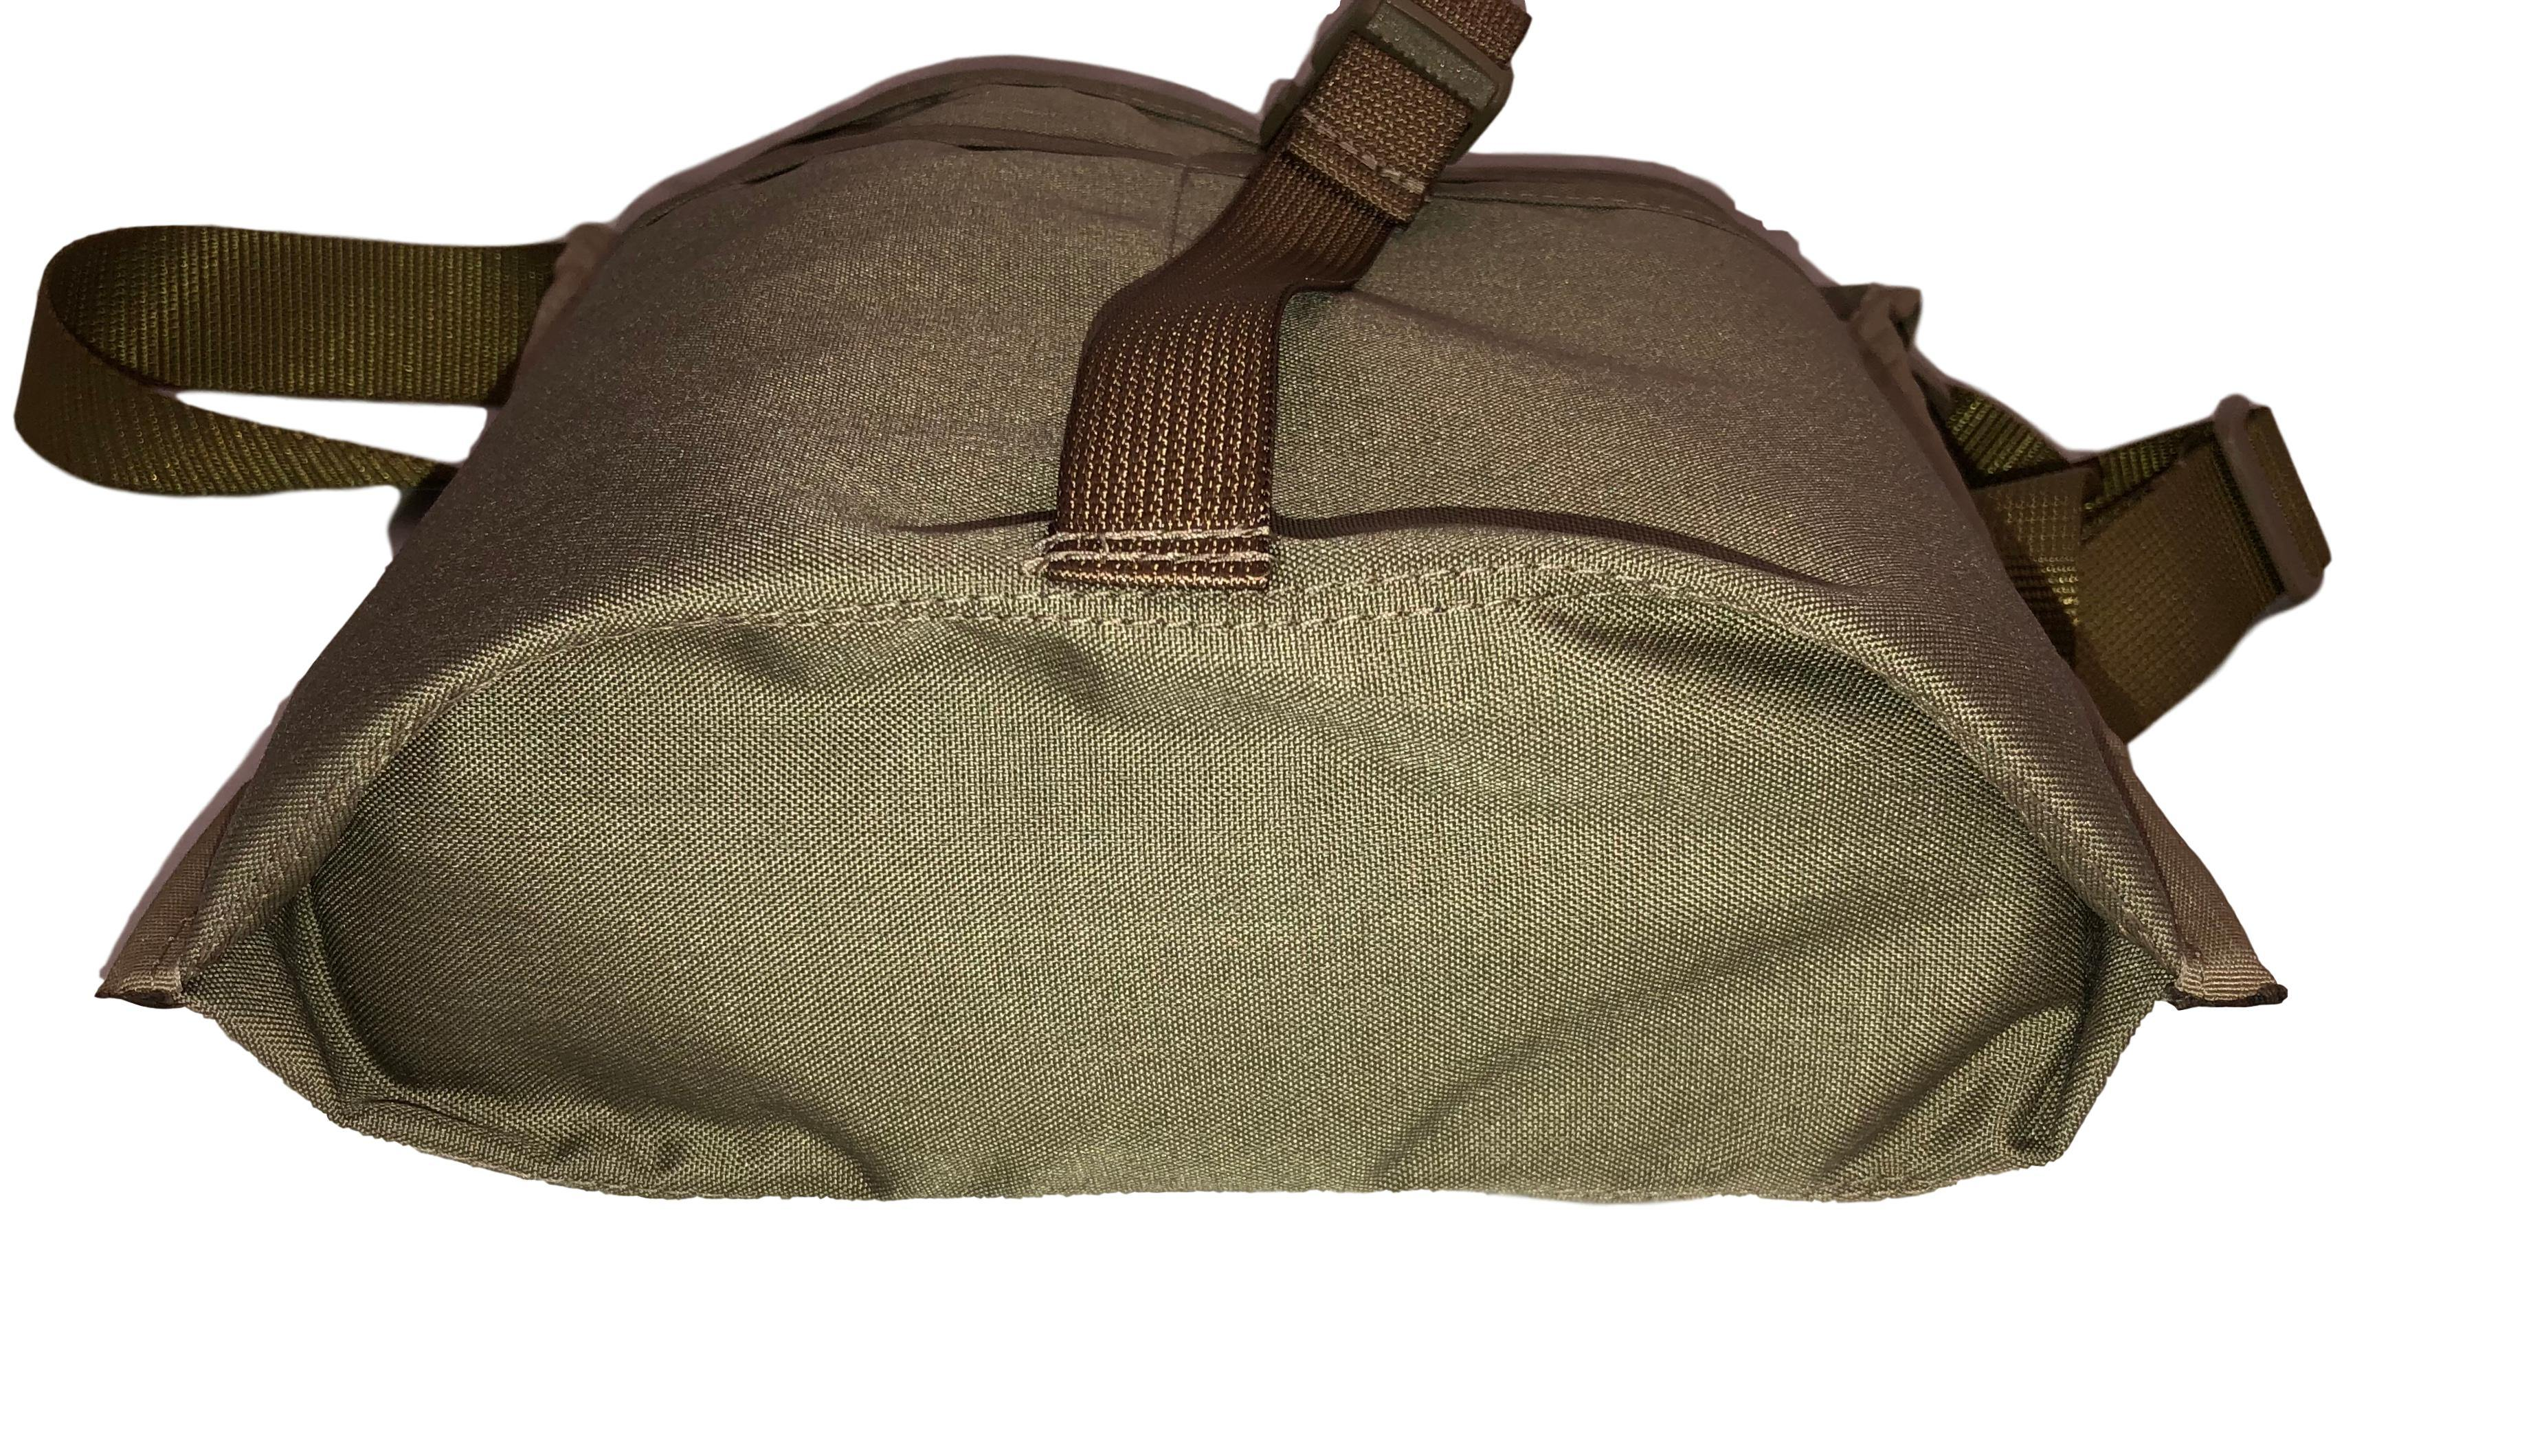 High Range Outdoors Satch Man Bag coyote base for EDC Urban Adventures